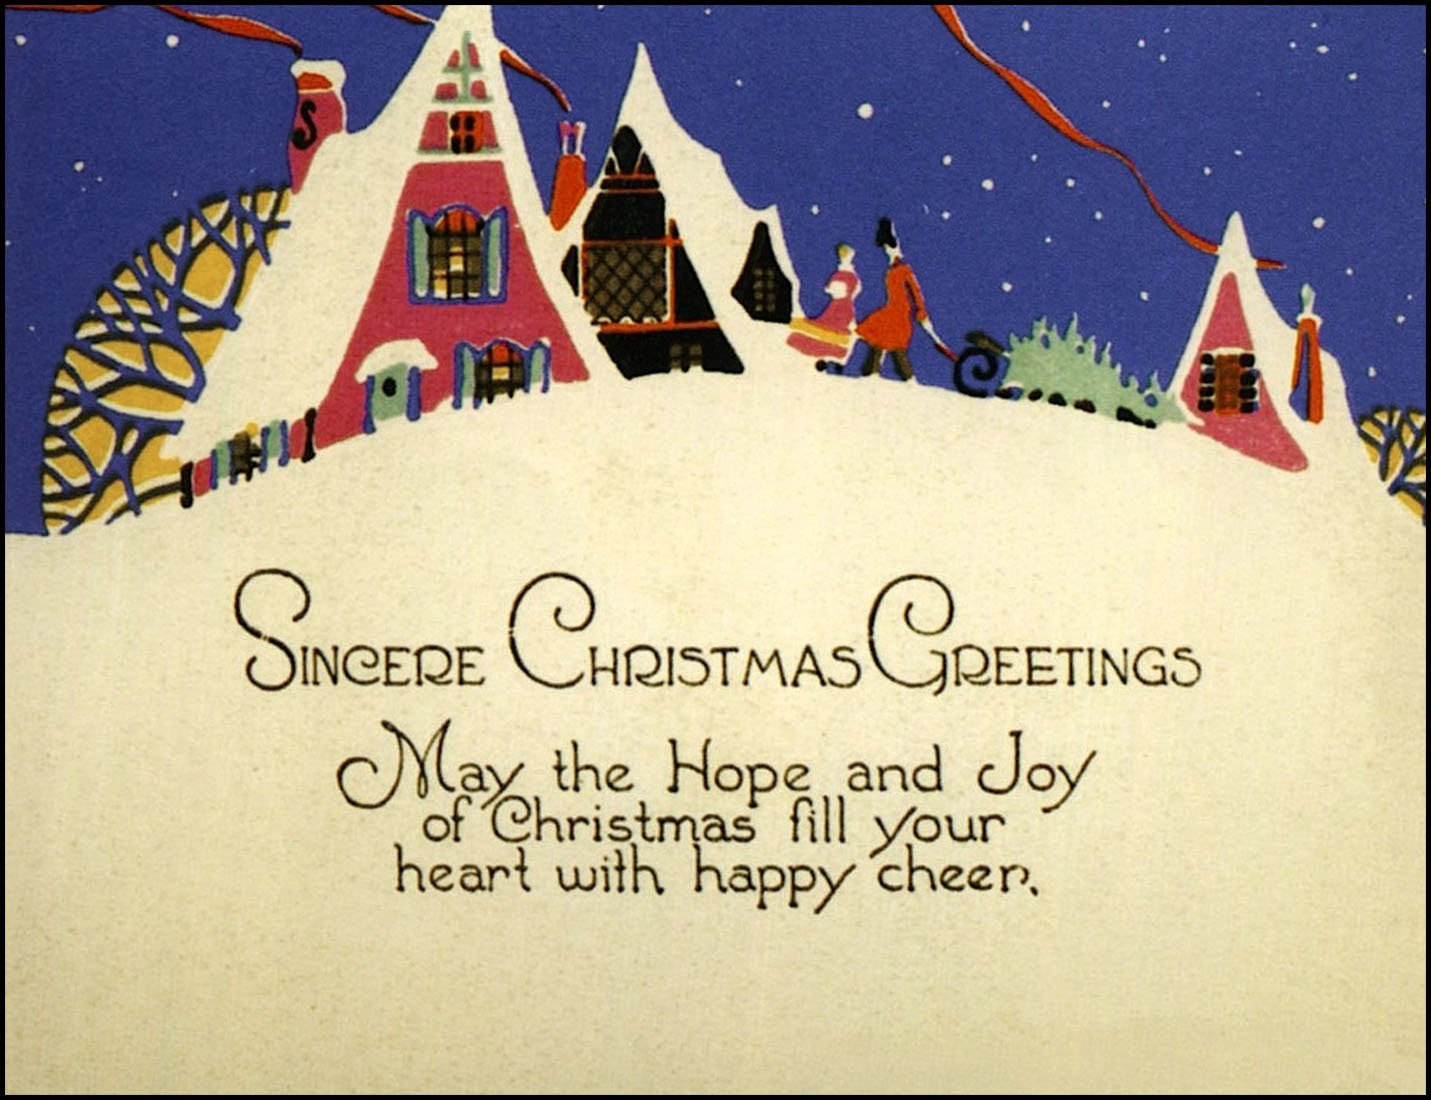 Old Christmas Greetings 1920s Card